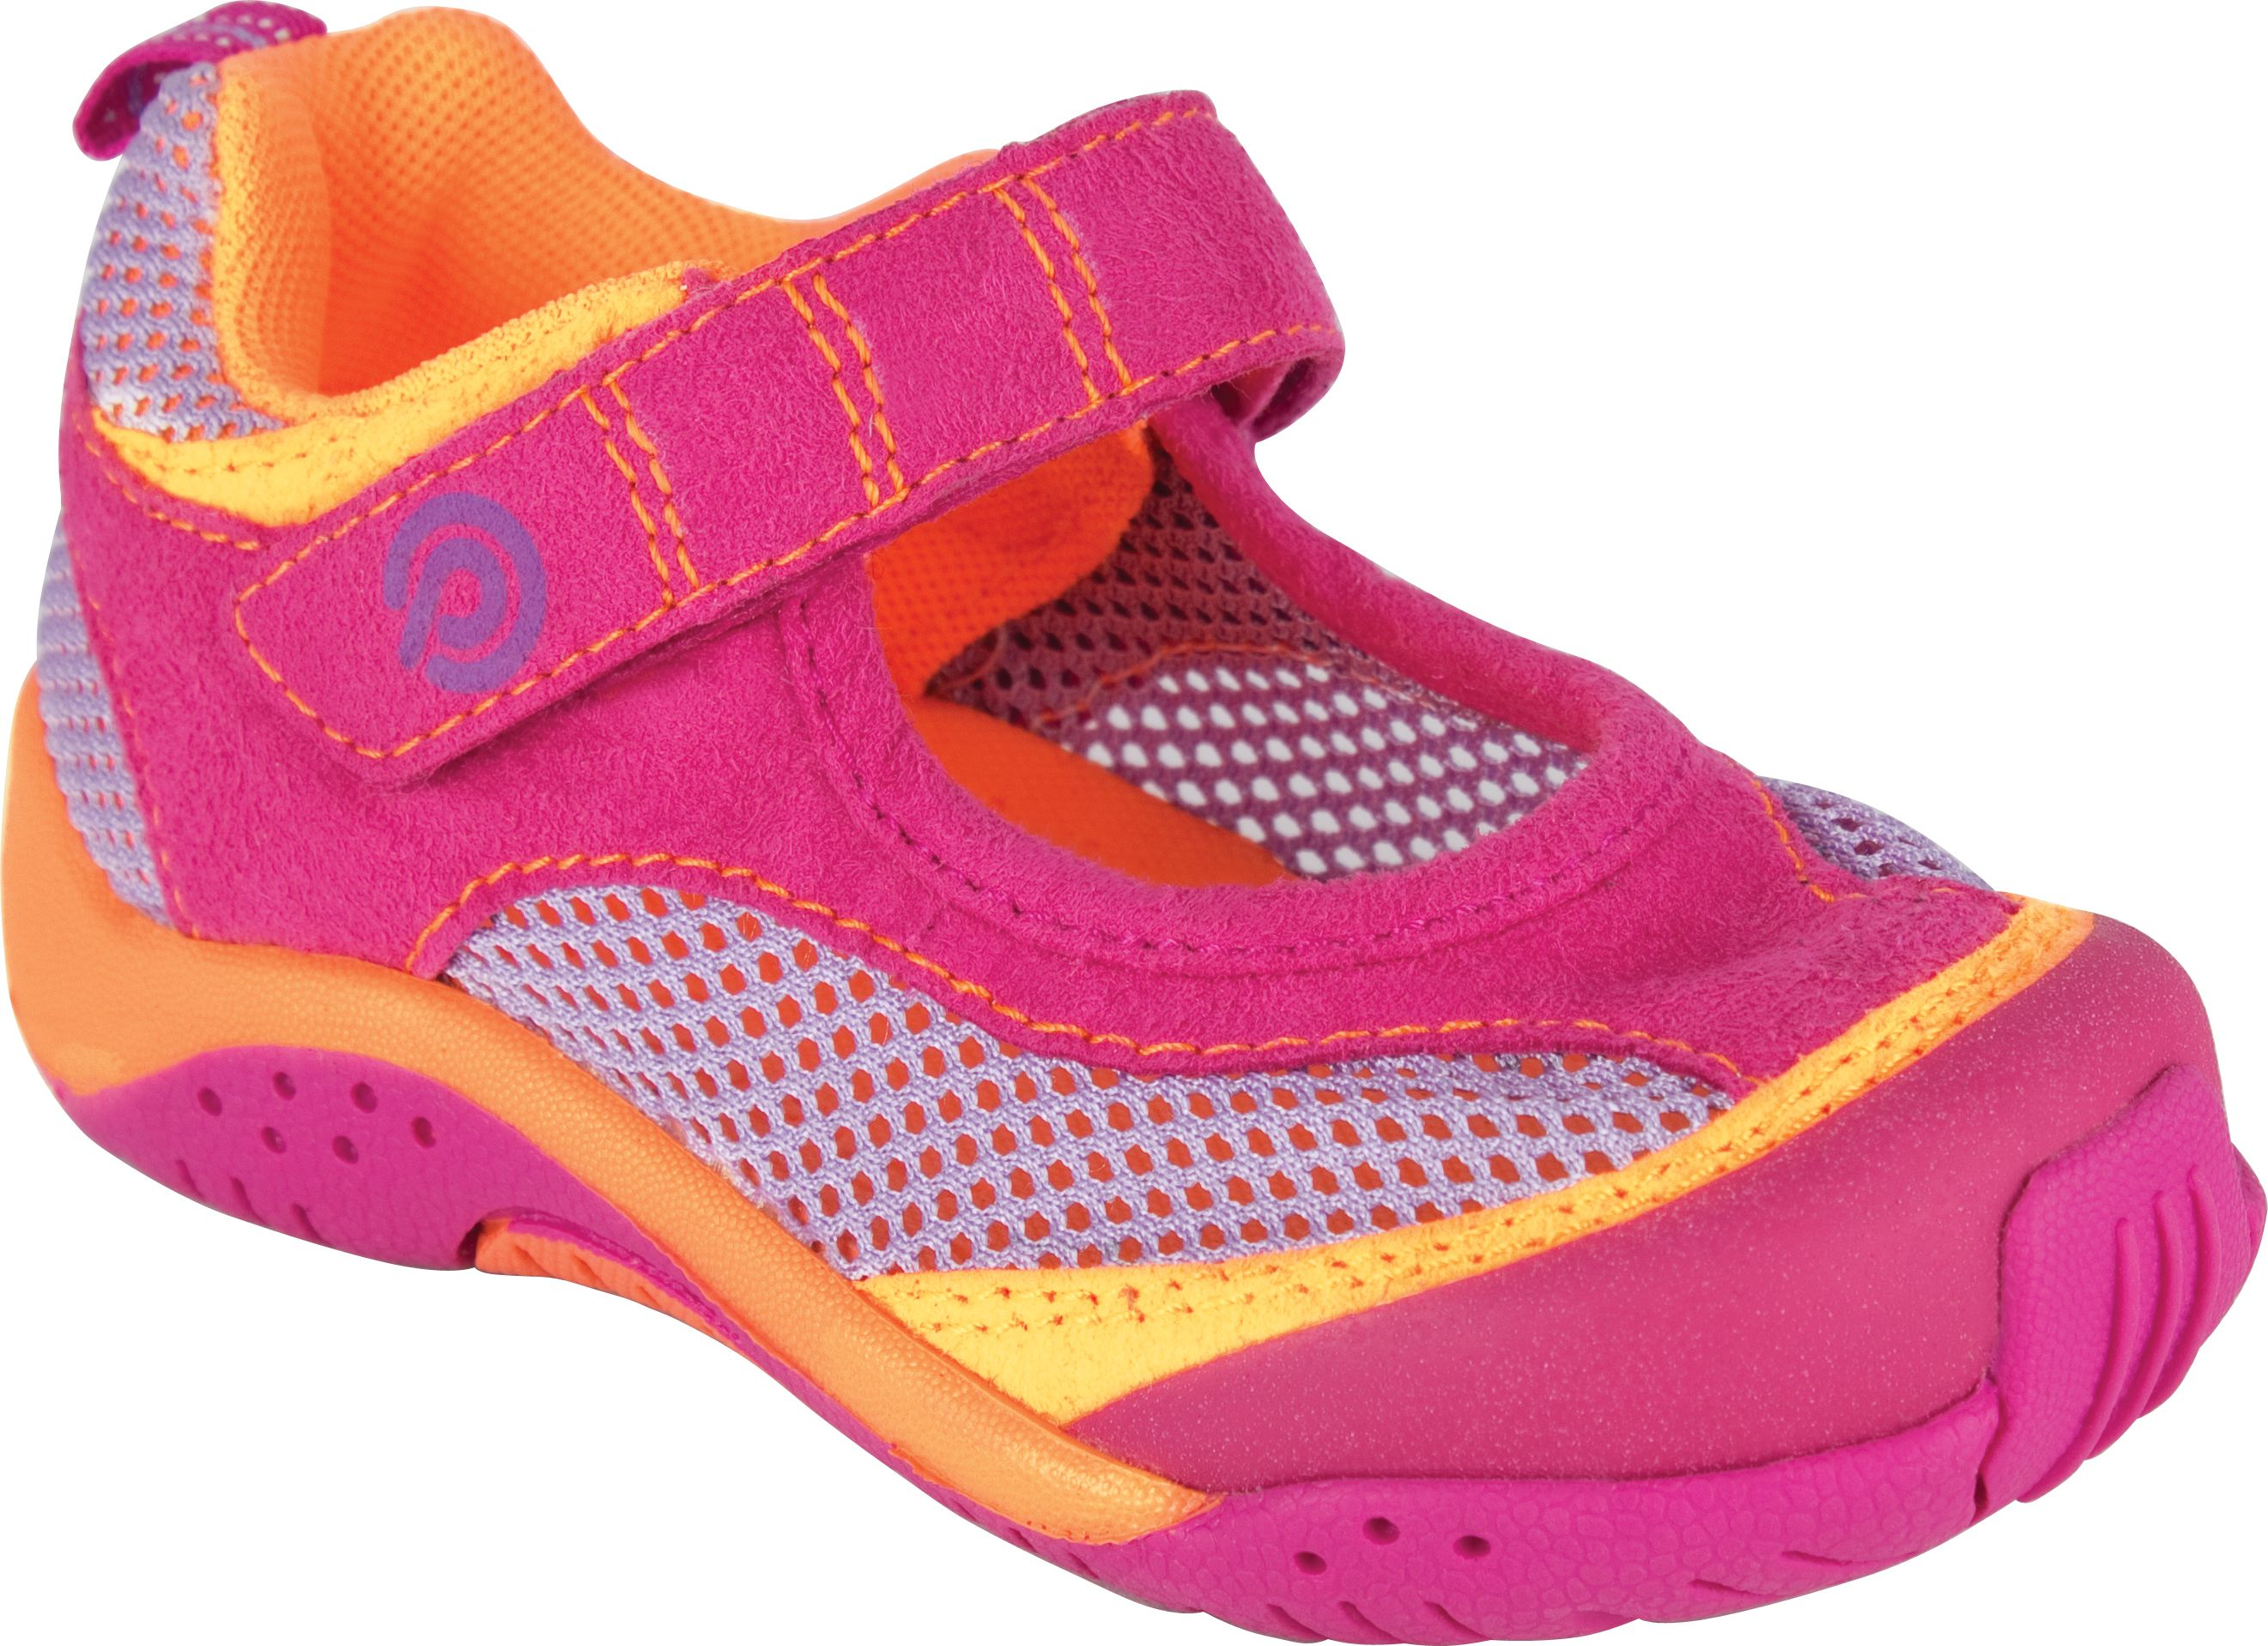 pediped water safe Darcy Fuchsia Orange Outdoor shoes for kids